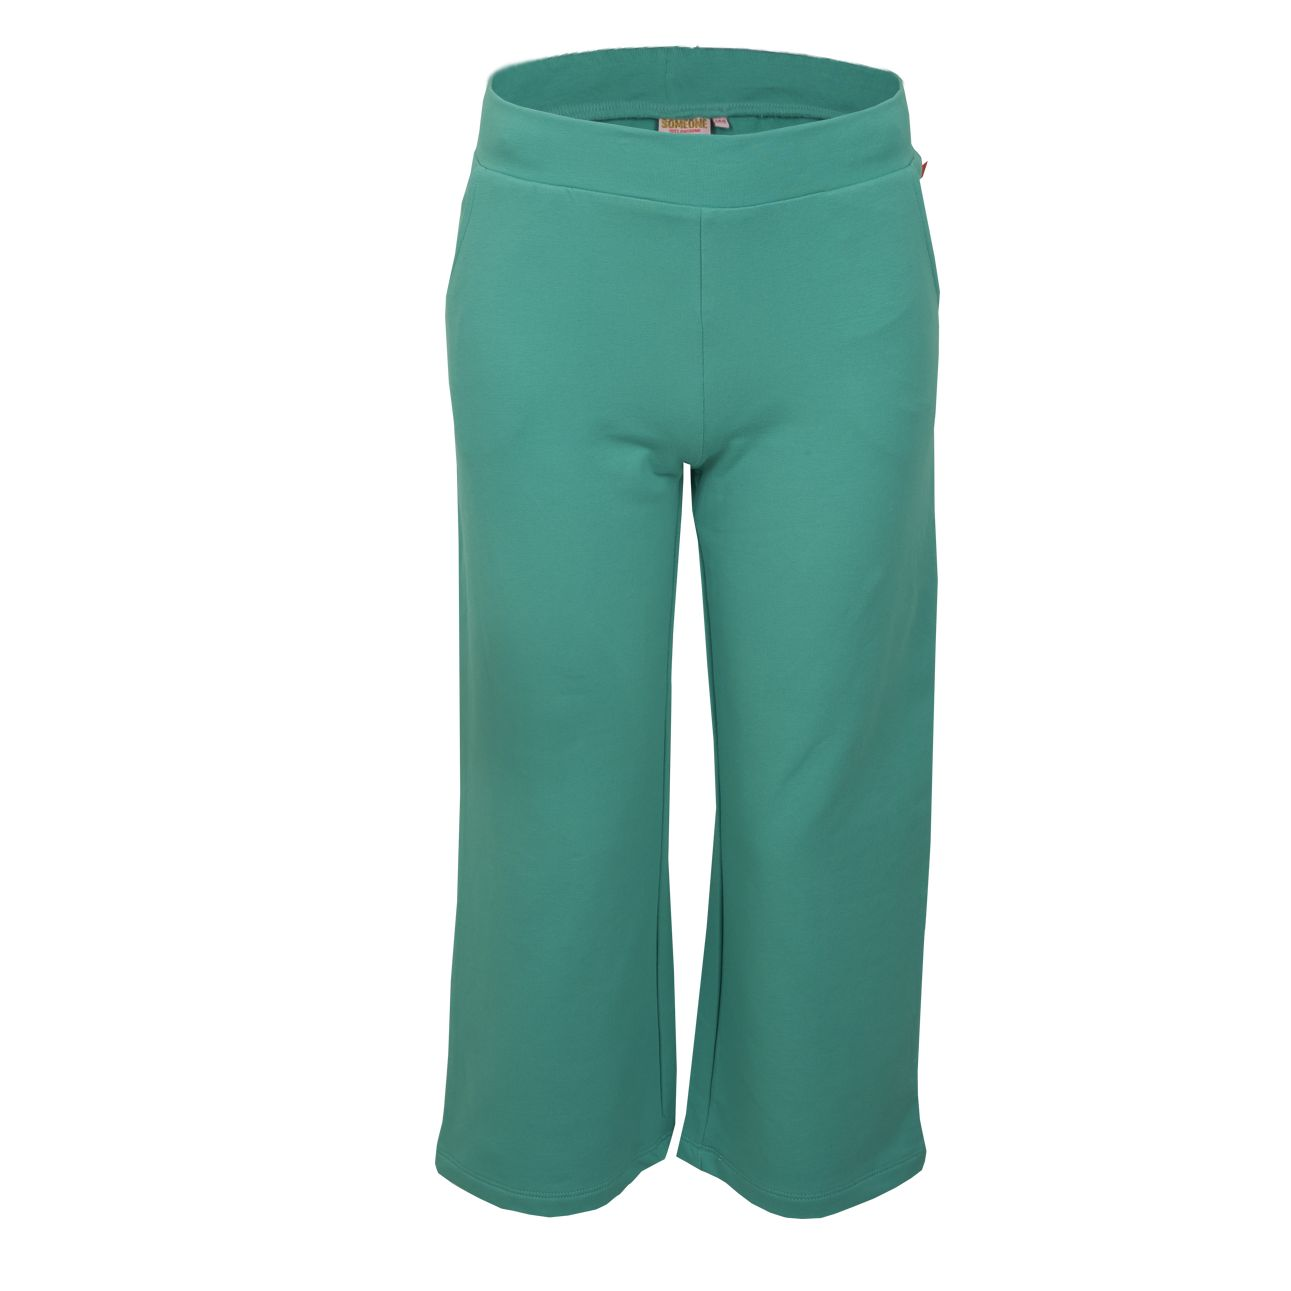 Culotte 110 Mint SOMEONE 100% Awesome